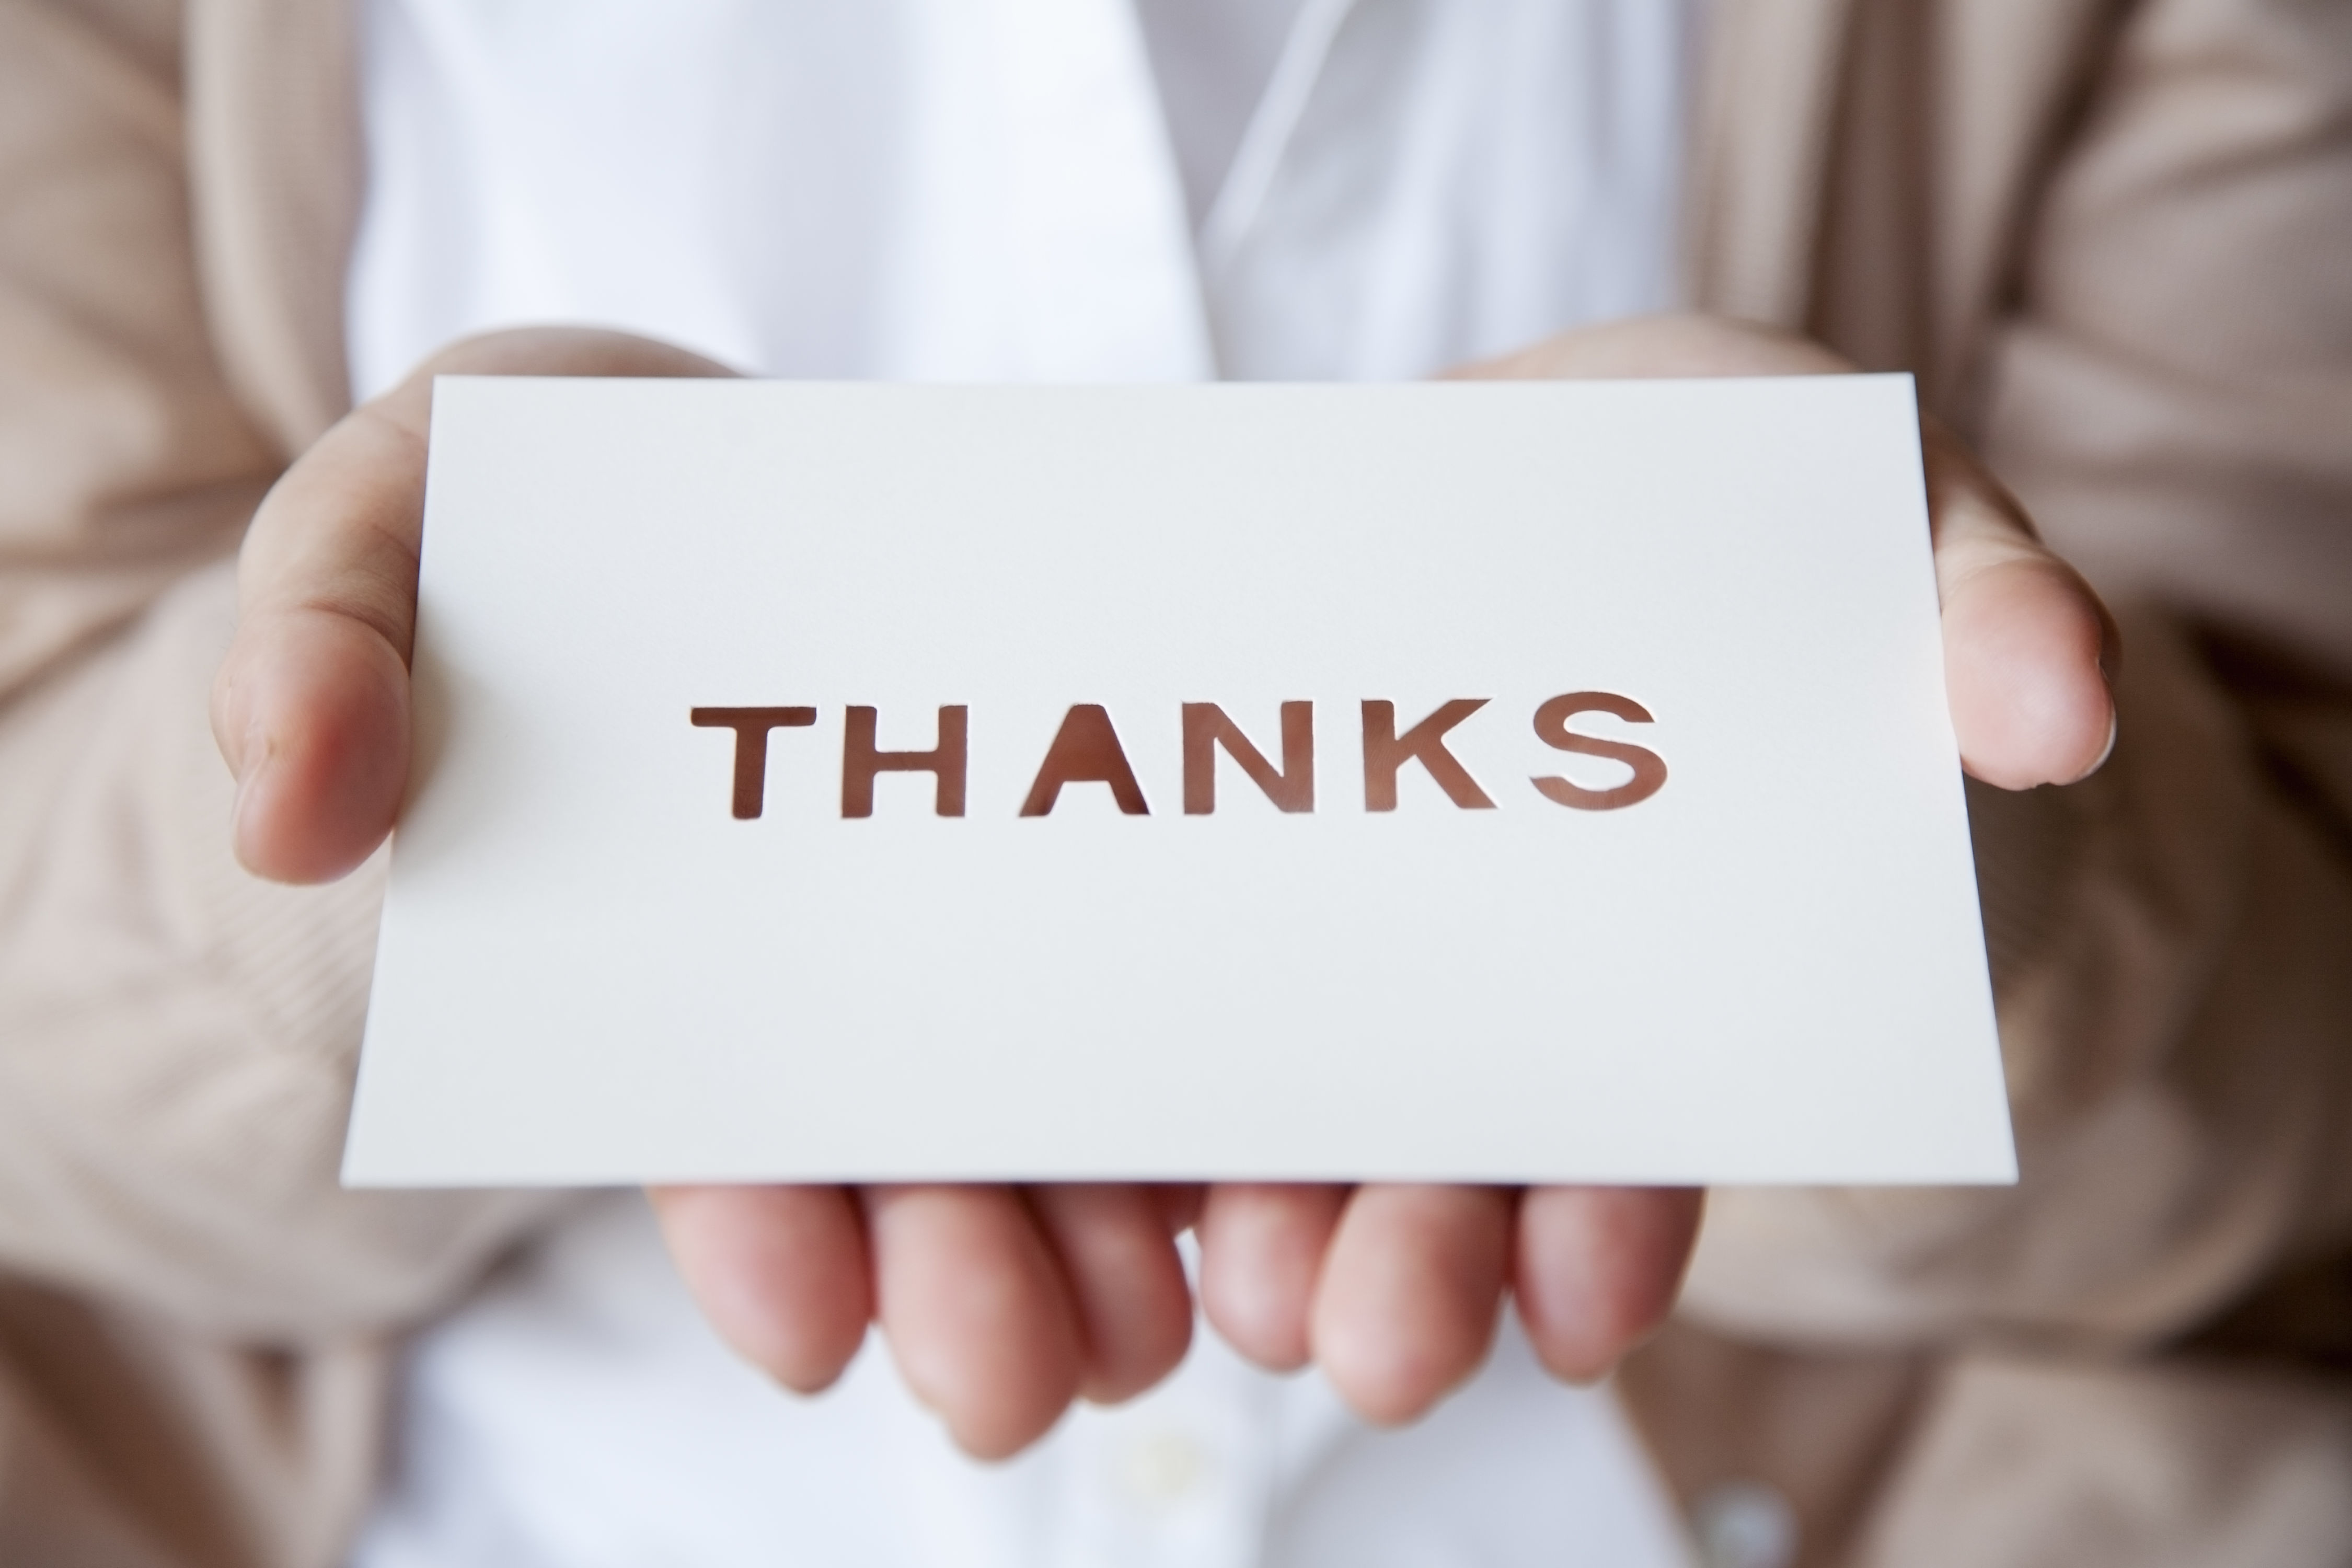 Is It Tacky To Hand-Deliver a Thank You Note?